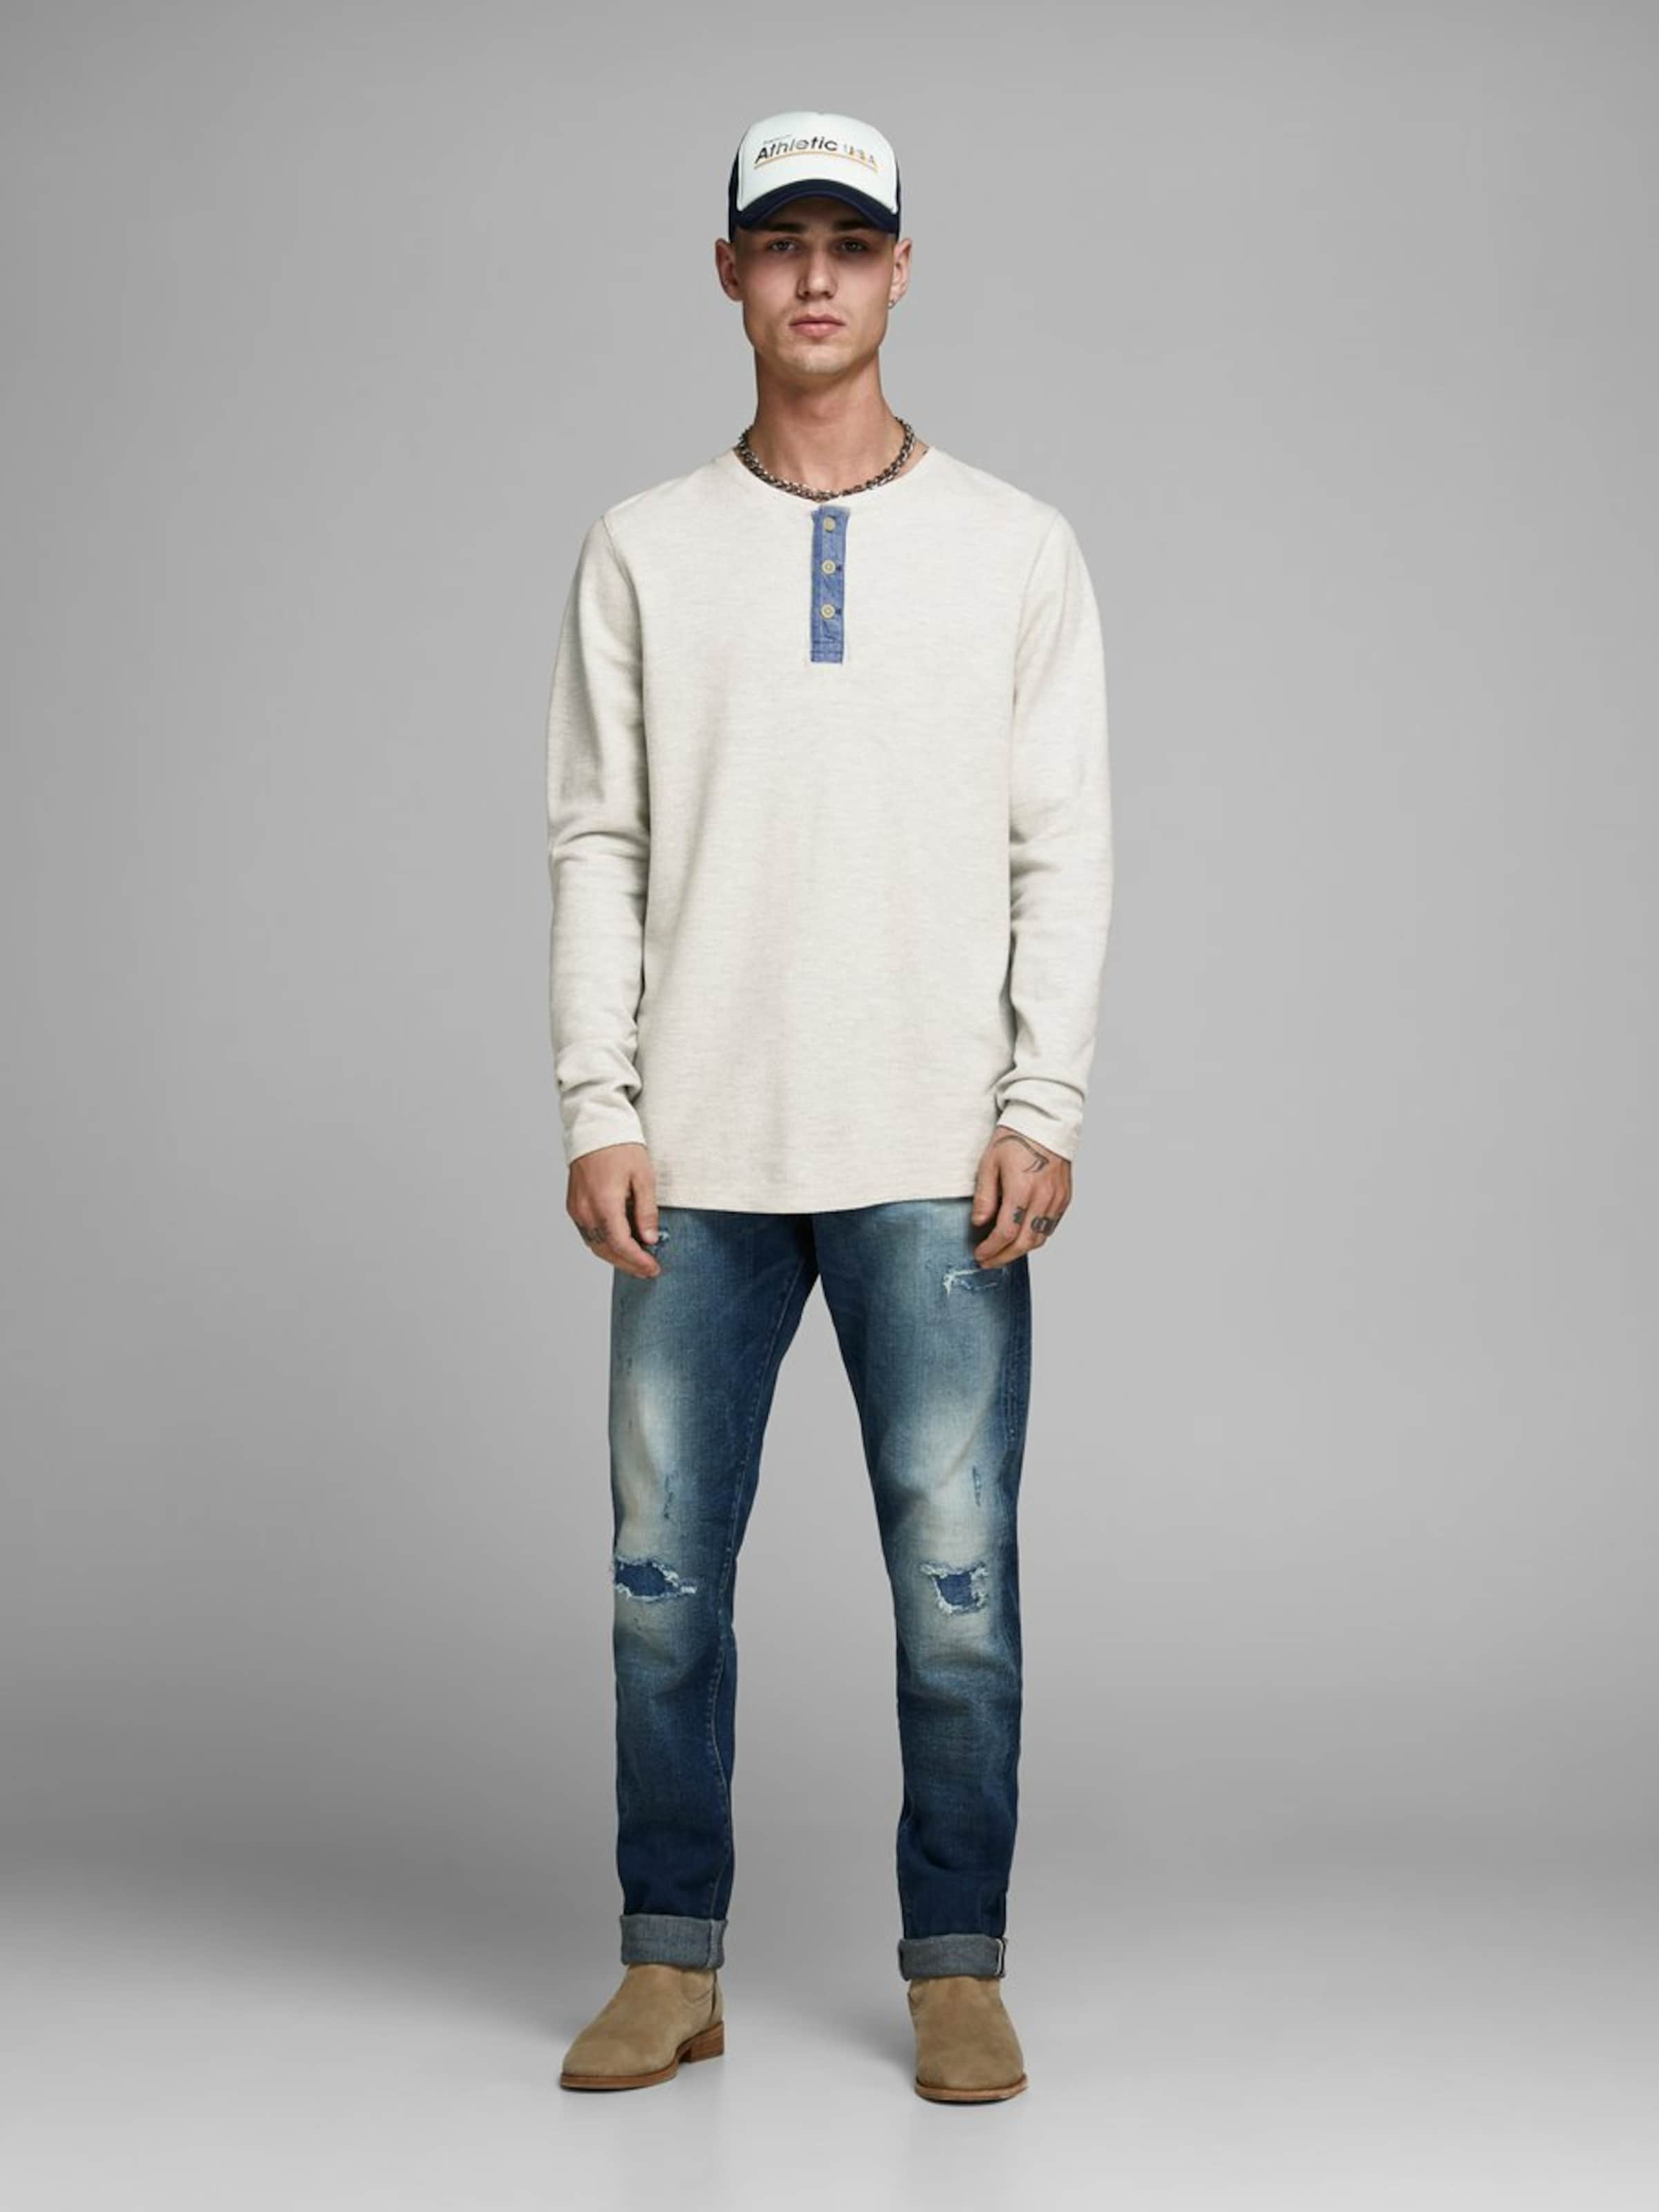 En Jackamp; Jones Marine Bleu shirt T XwOkZuPiT